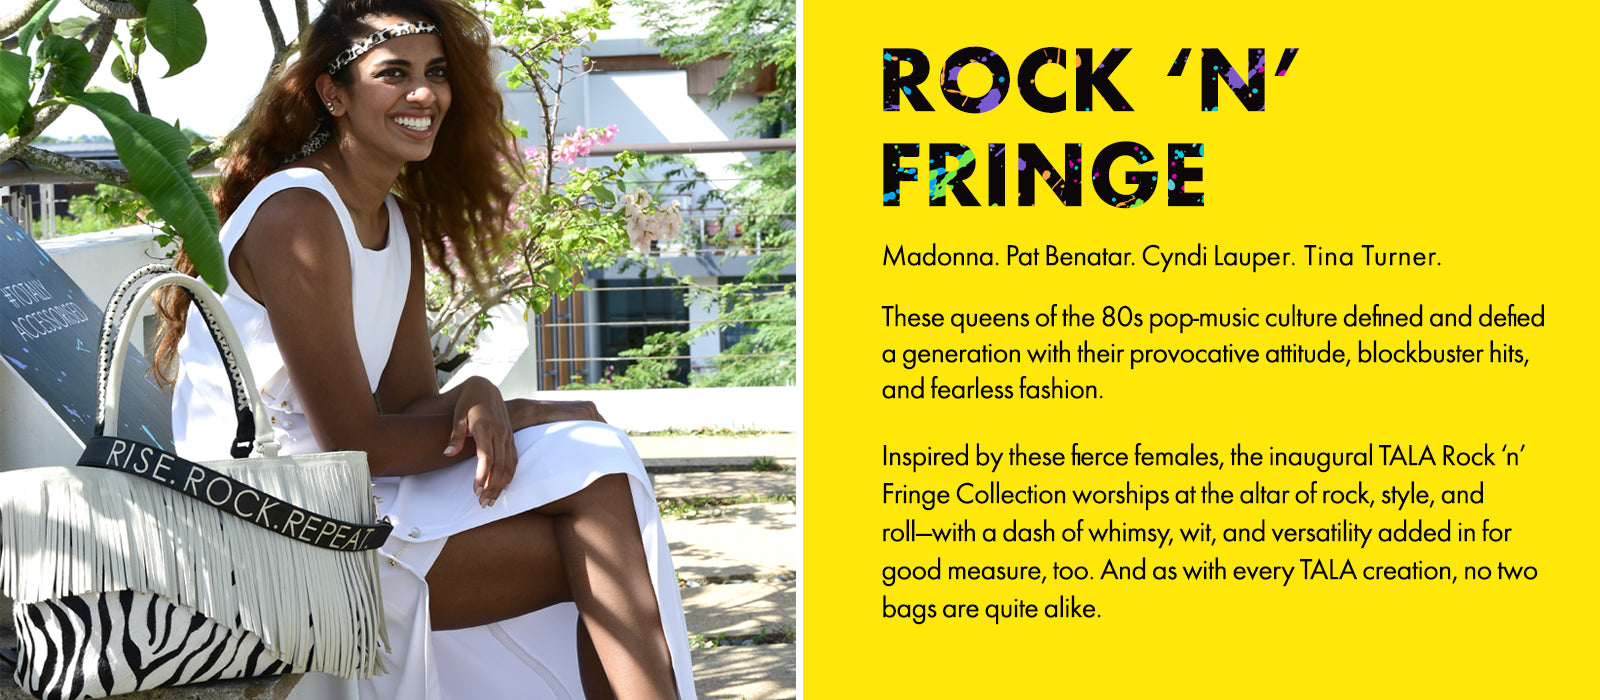 The Rock 'n' Fringe Collection